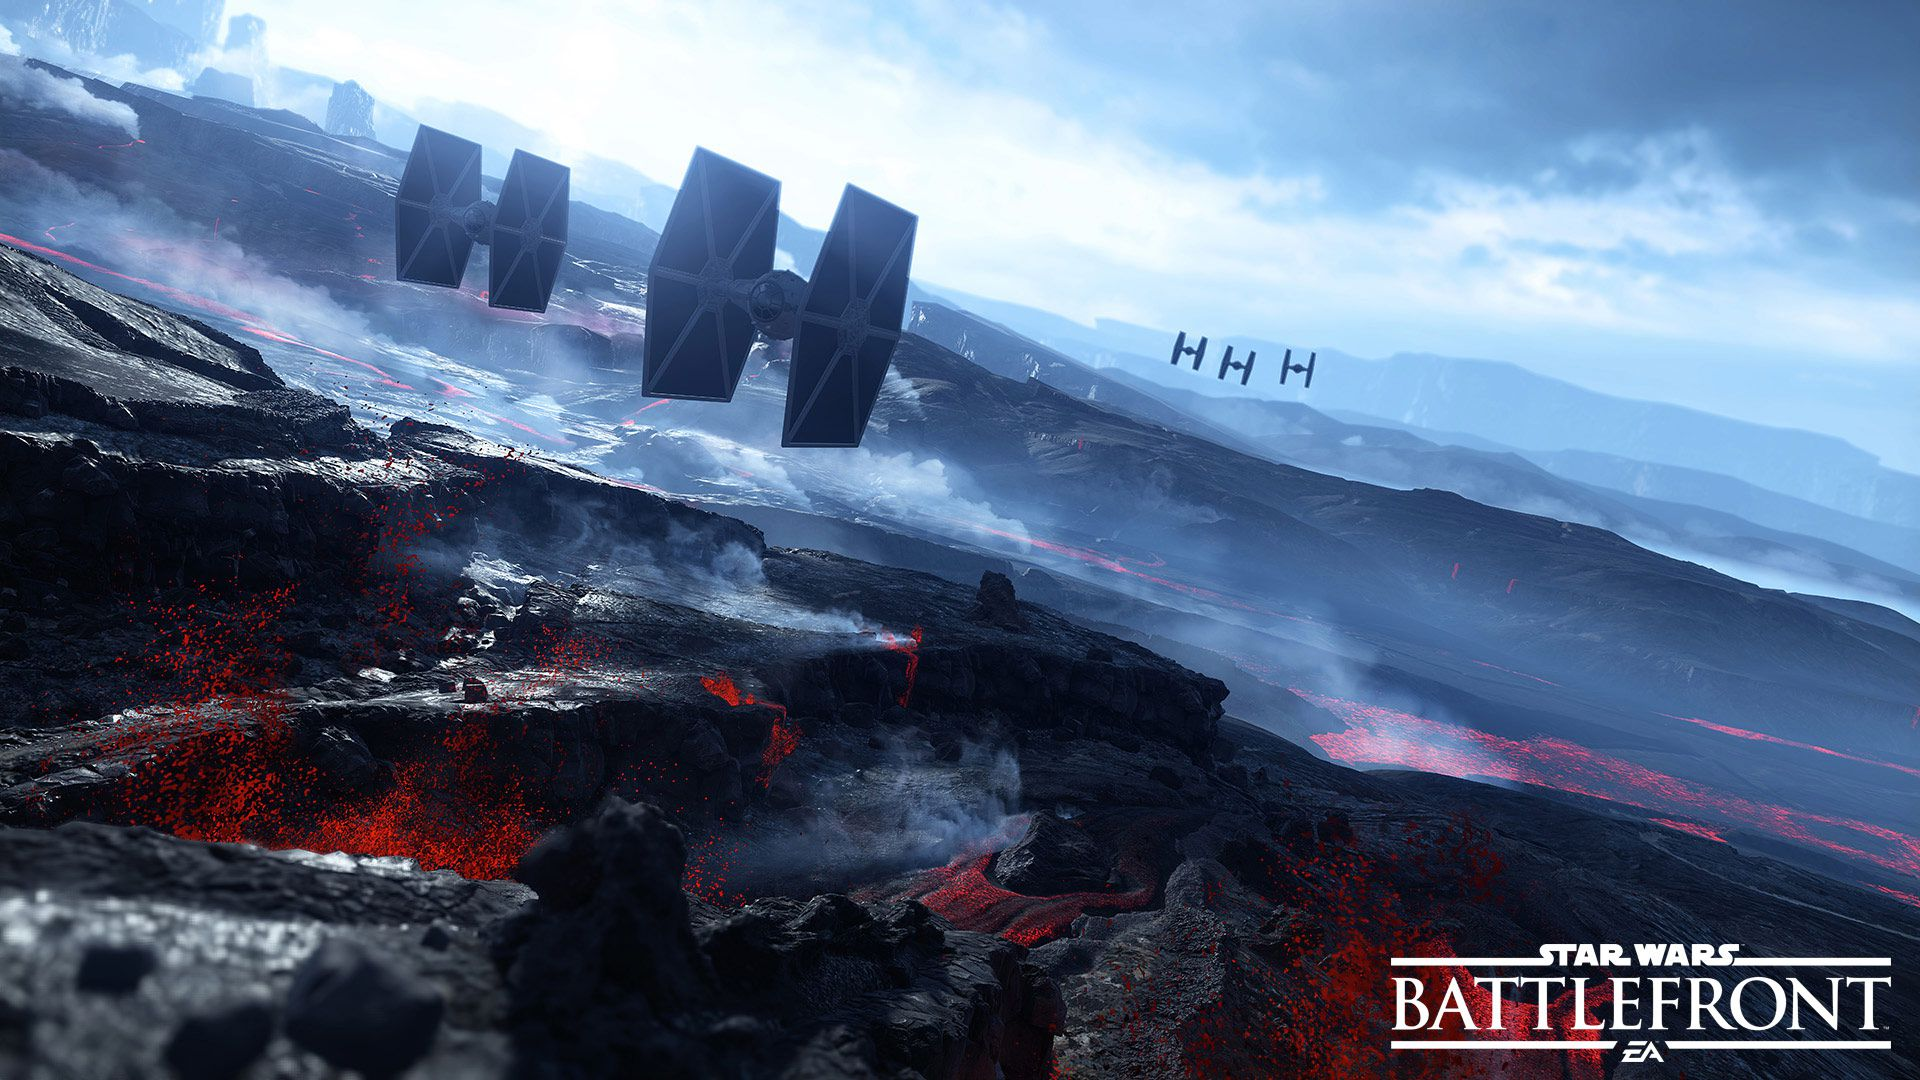 Star Wars Battlefront Screenshots, Pictures, Wallpapers - Xbox One ...